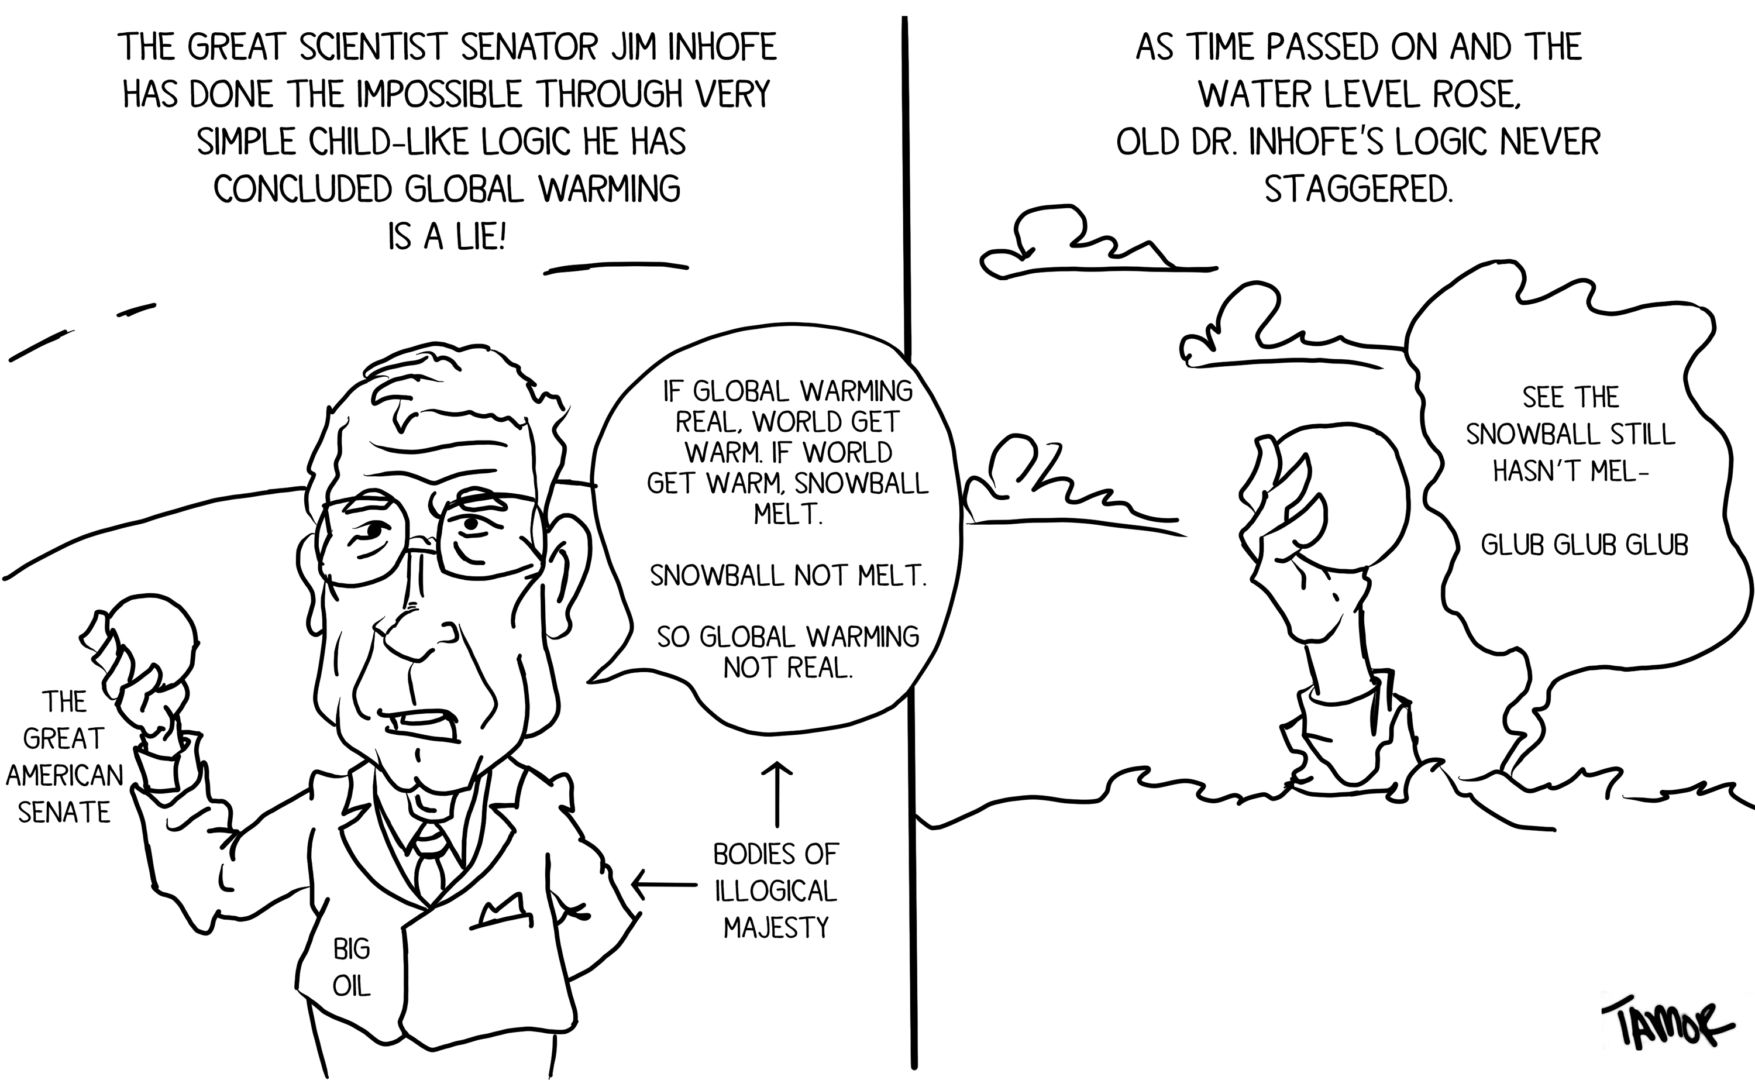 Cartoon: The snowball test proves climate change is a hoax